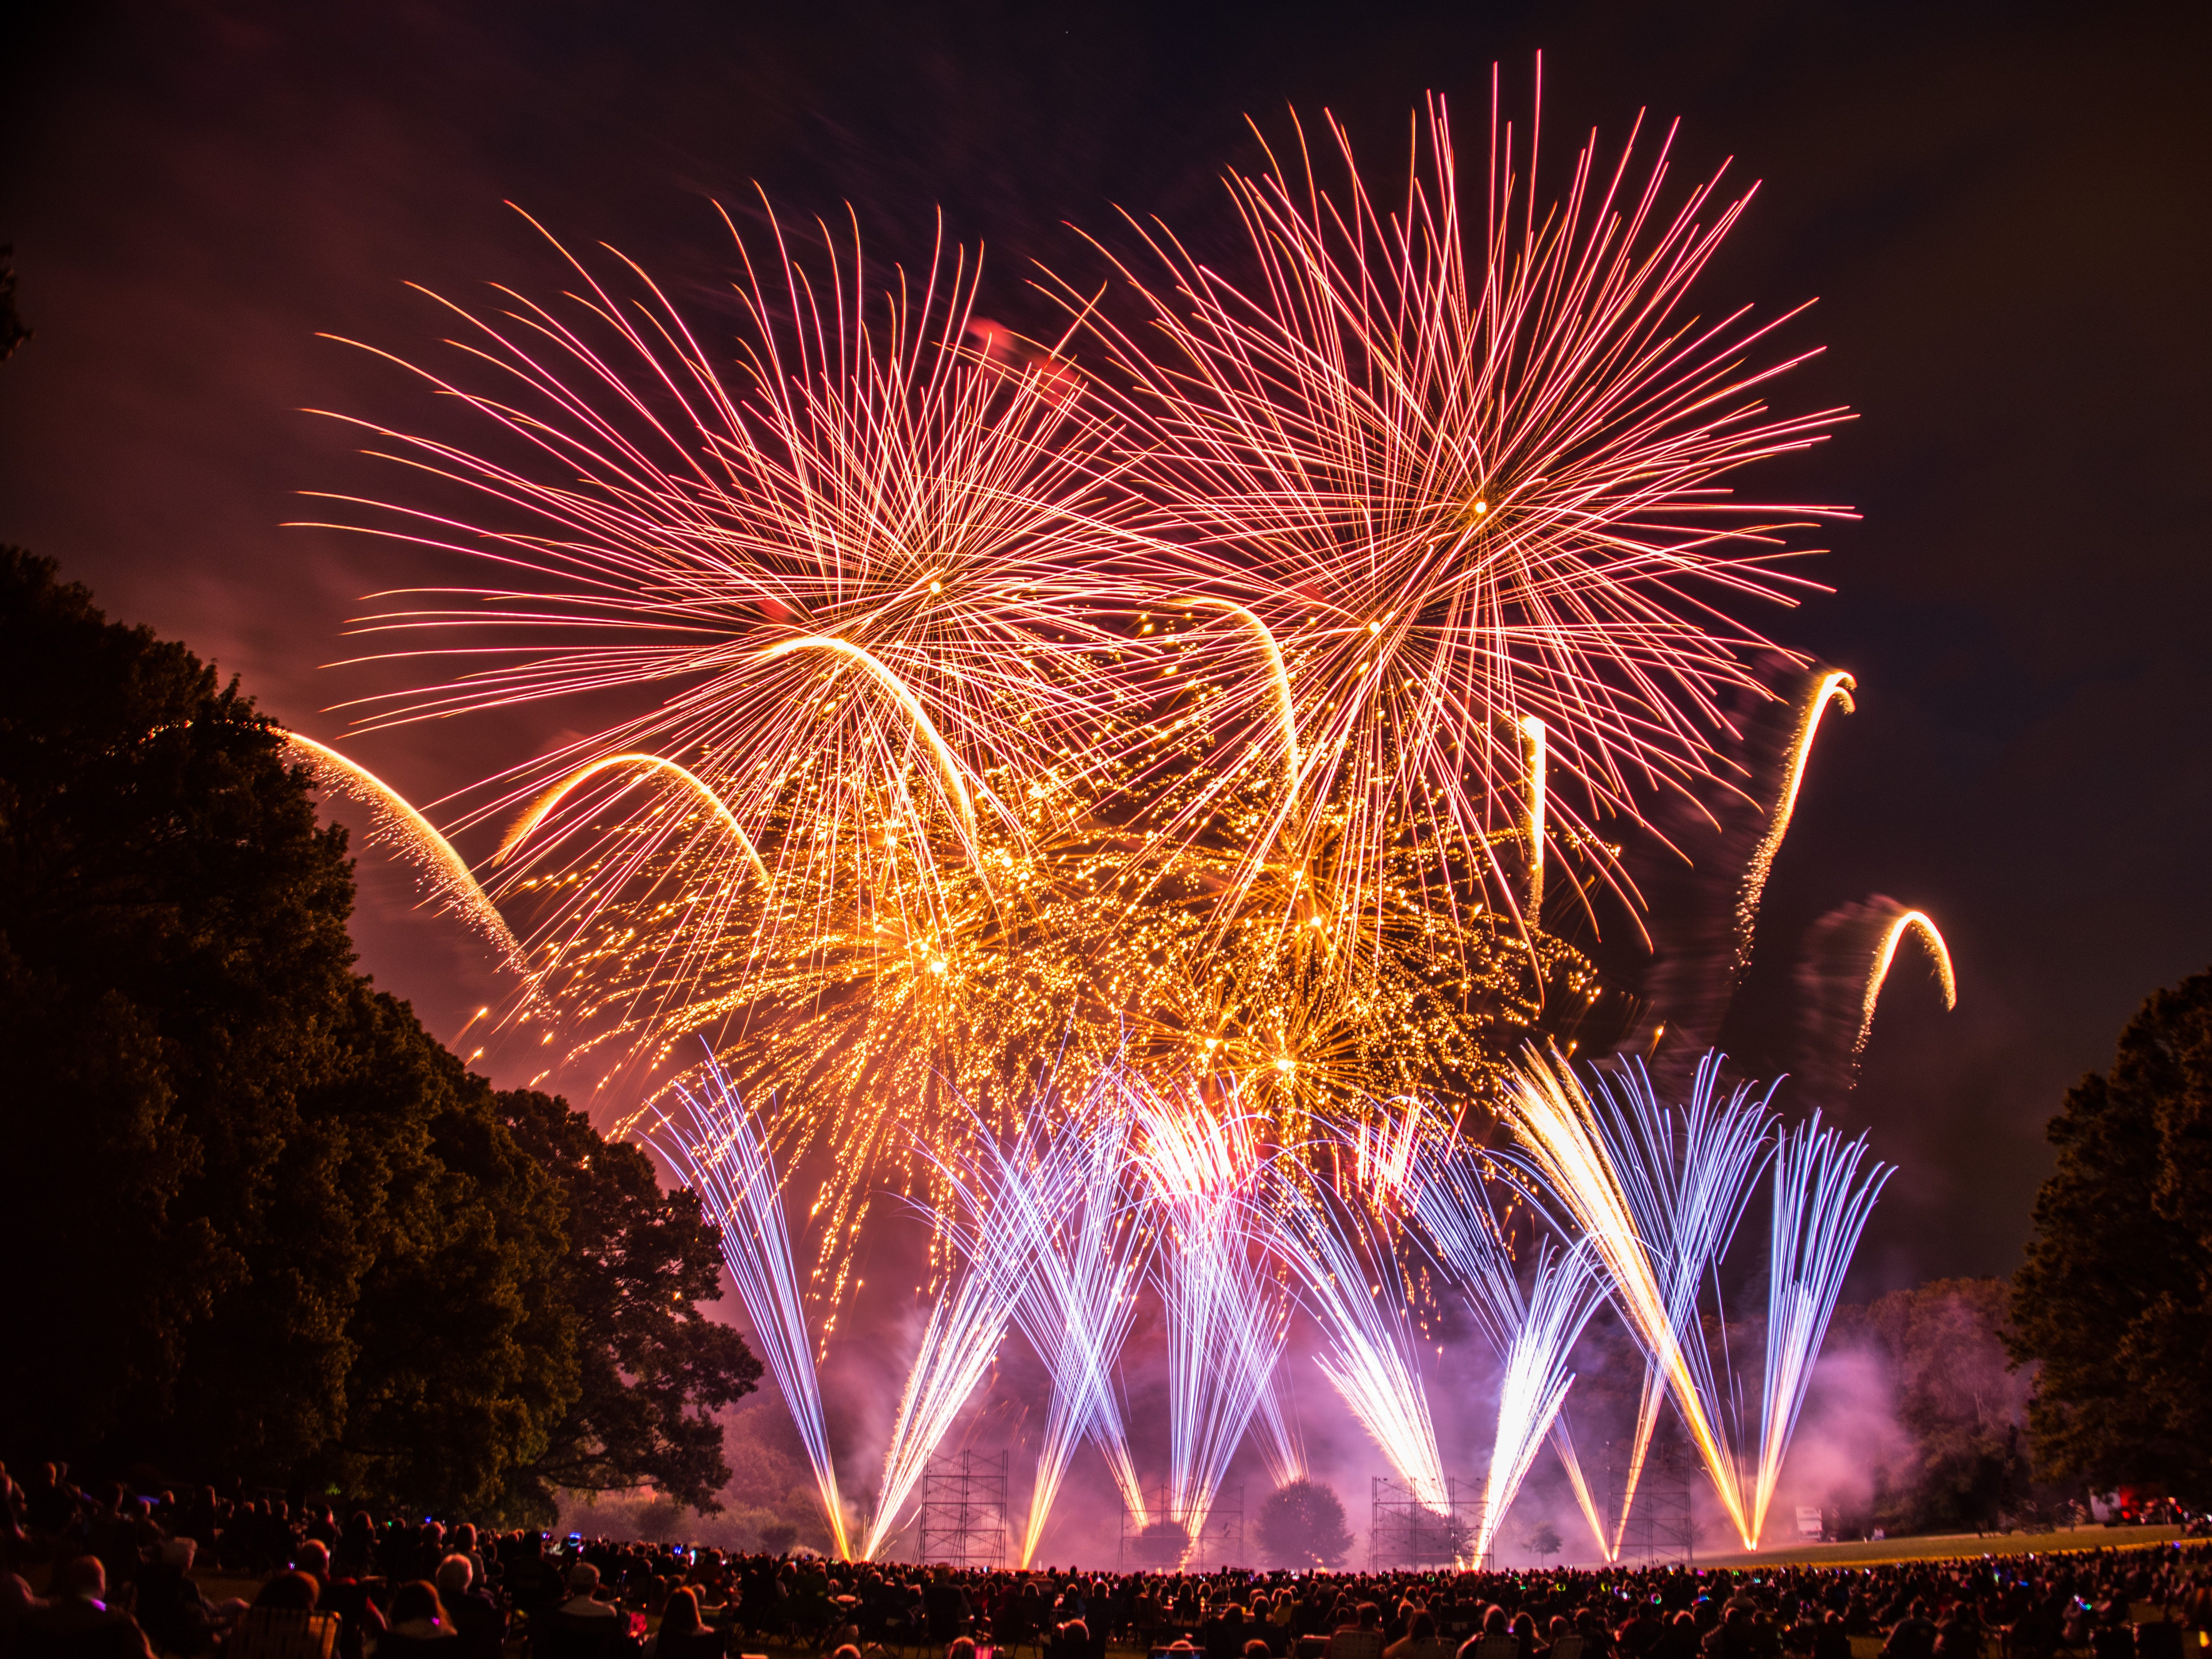 Attend a fireworks display atHagley Museum, said to be the best of the summer in the state. www.hagley.org/calendar/fireworks-hagley-presented-mt-bank-and-wilmington-trust